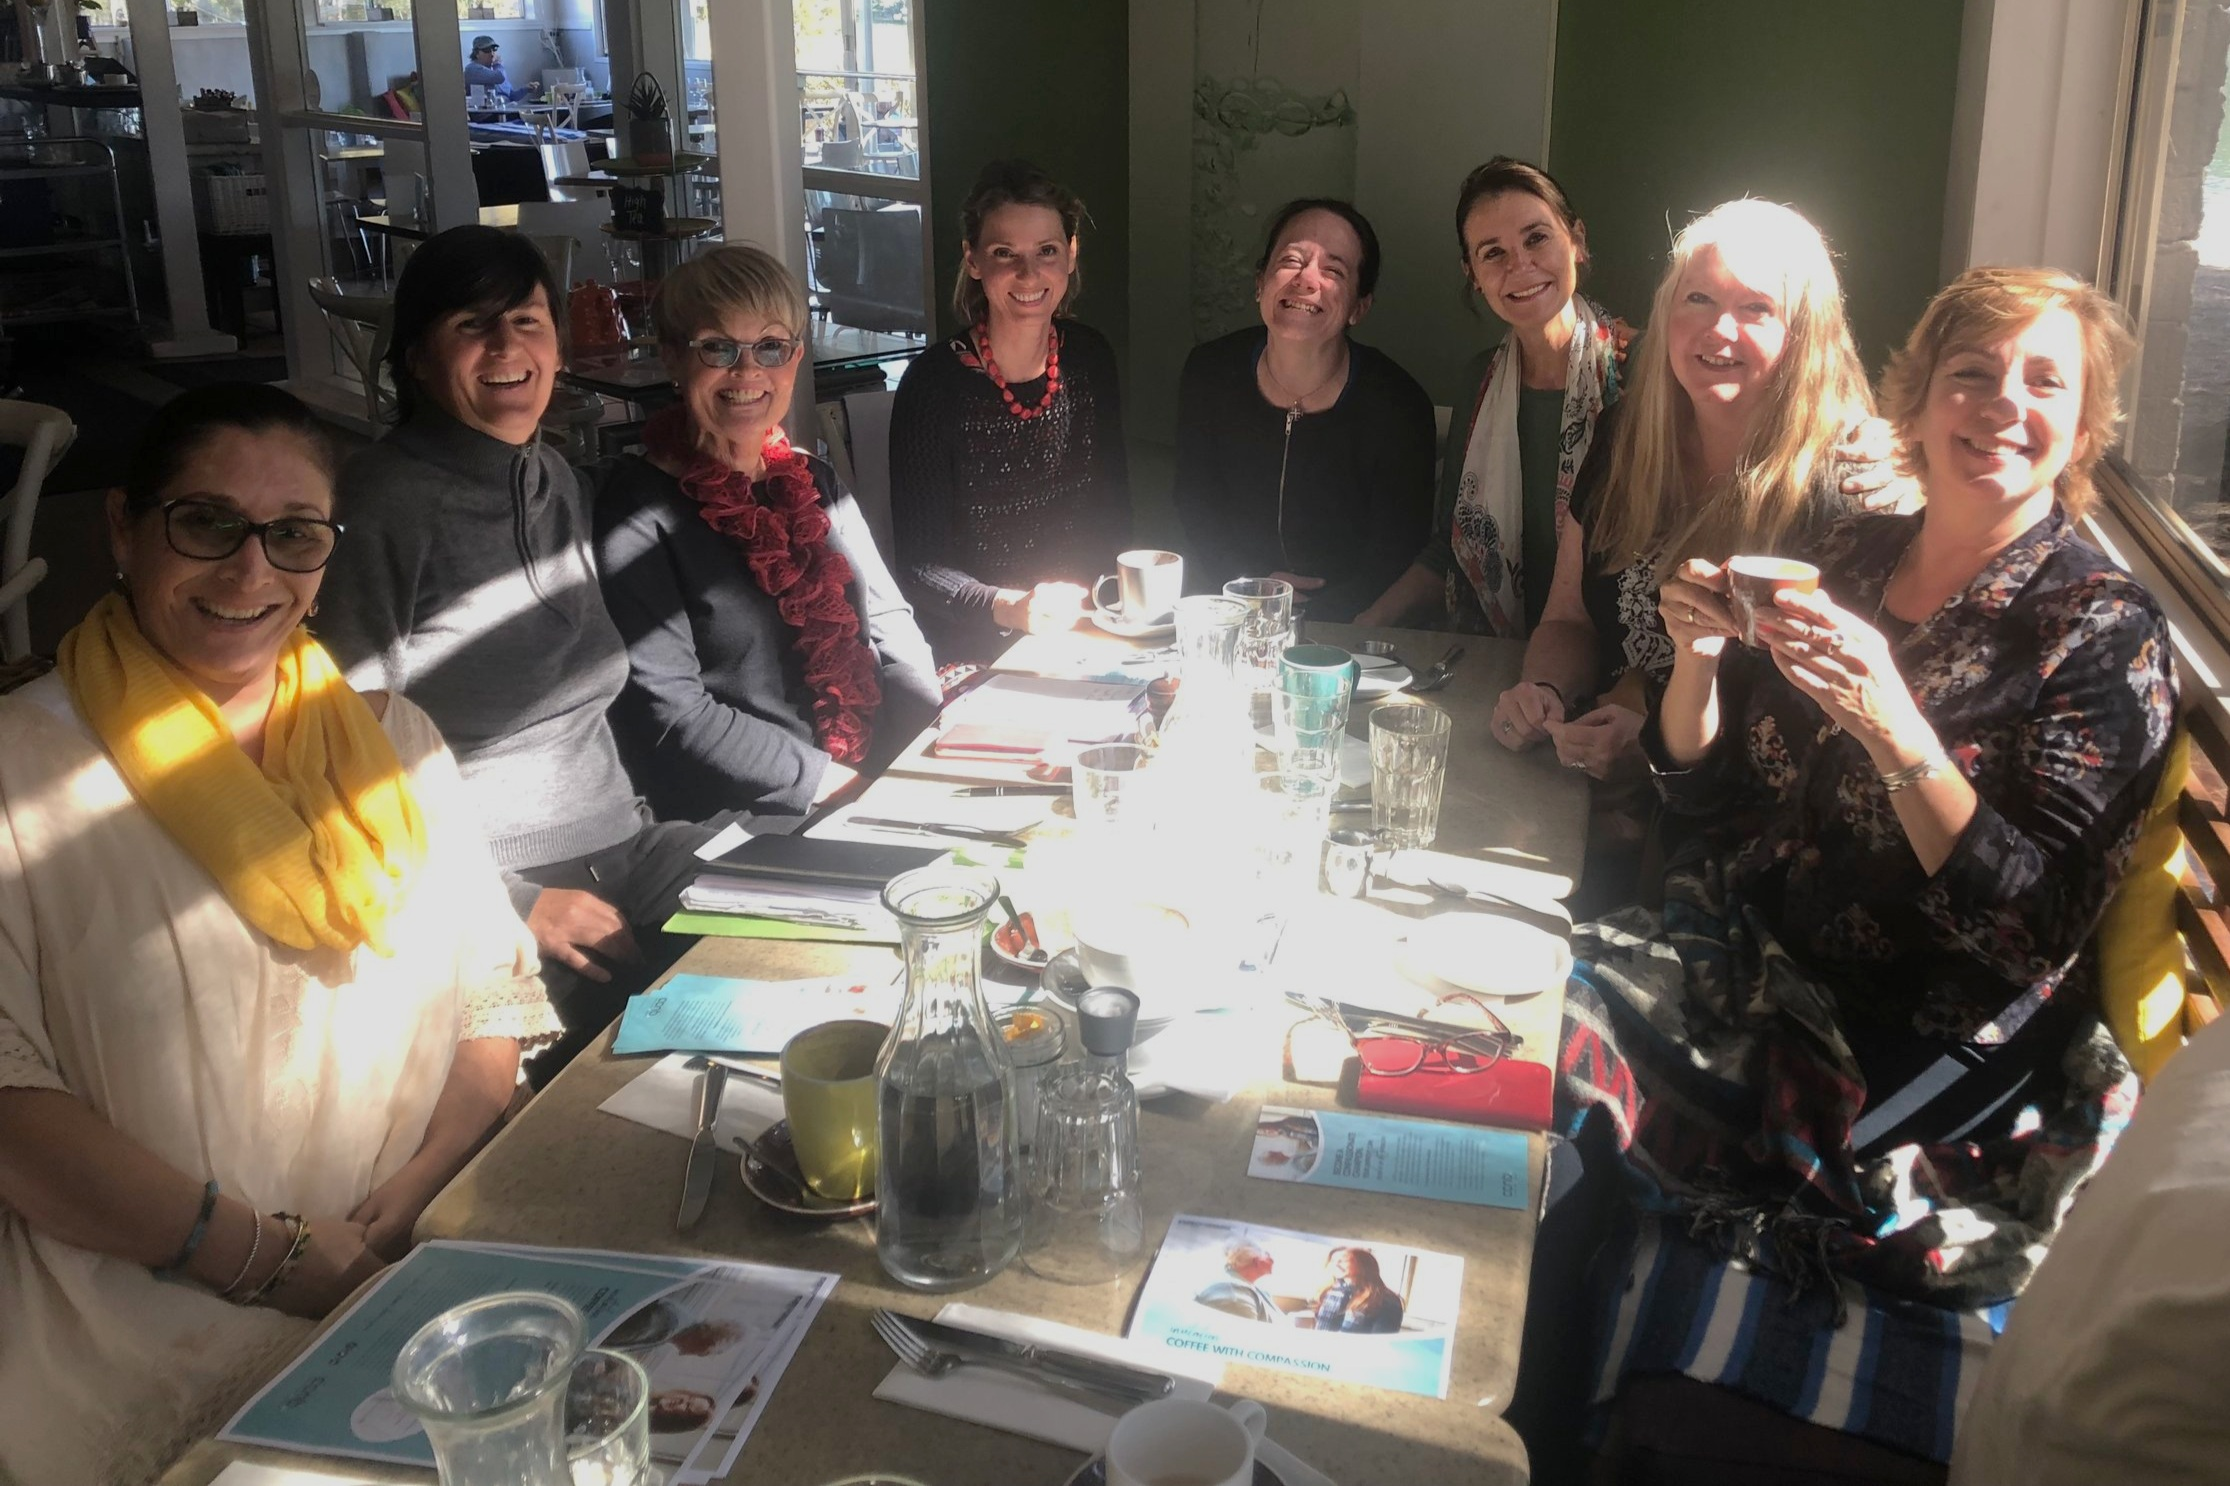 Northern Beaches ComCom Group kicks of their monthly Coffee with Compassion Group